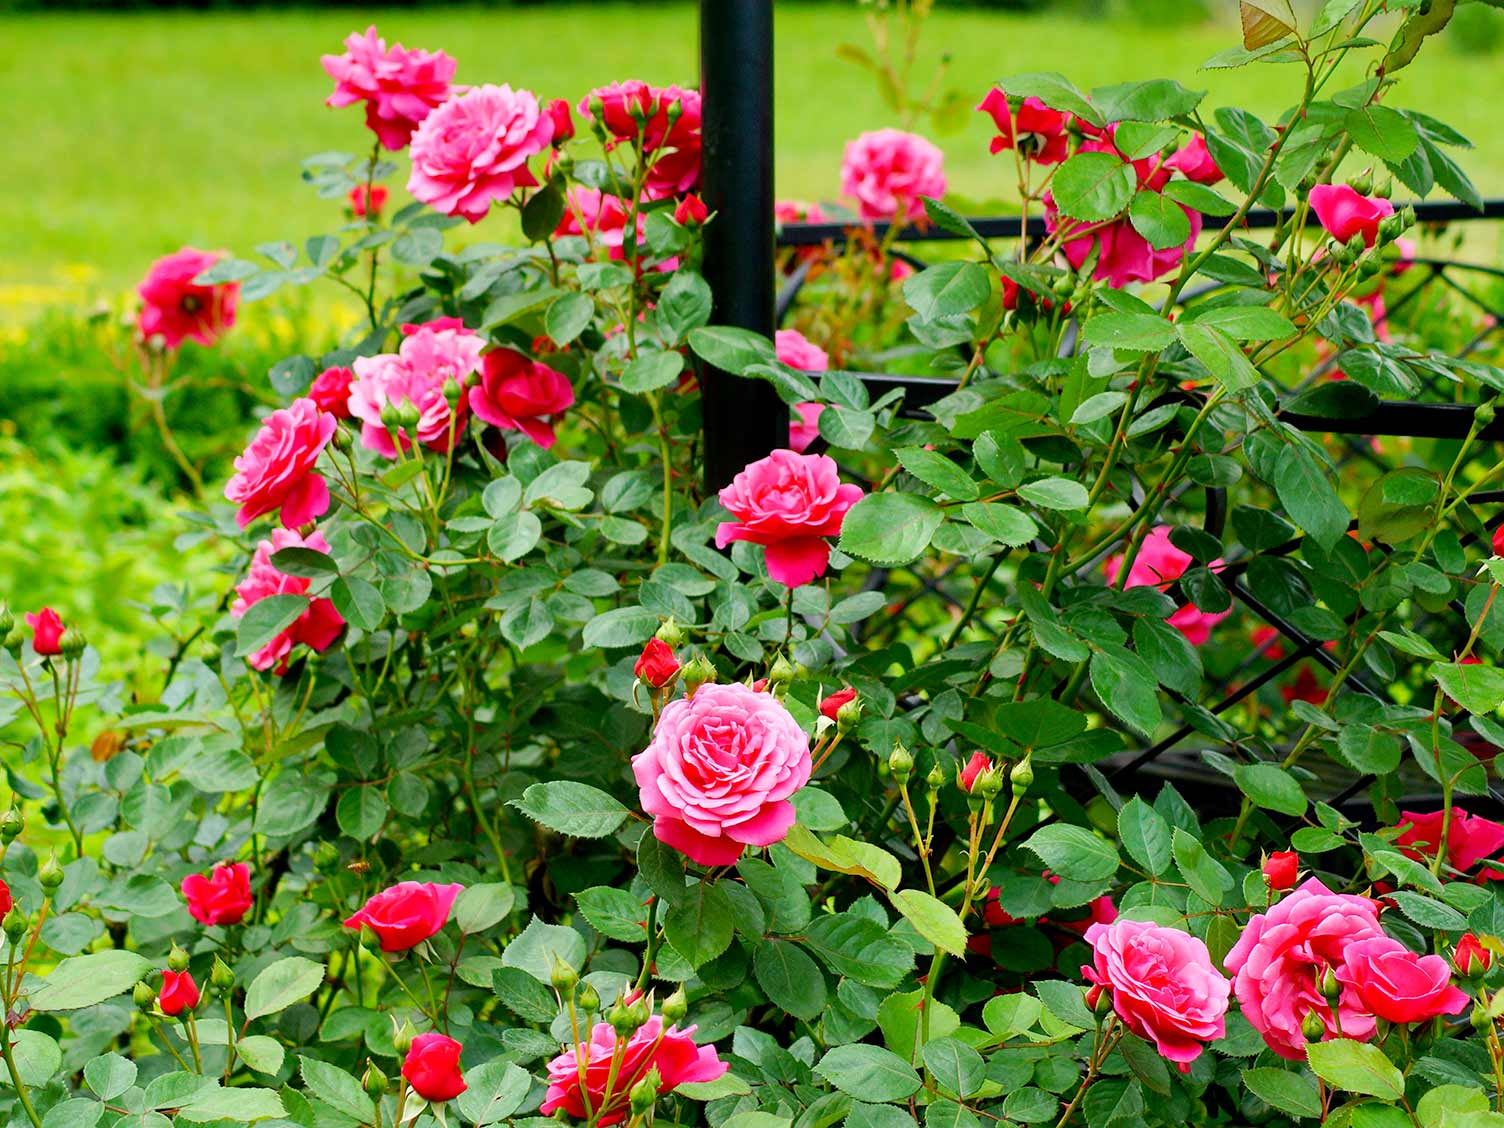 A Complete Guide To Growing Roses Lovethegarden